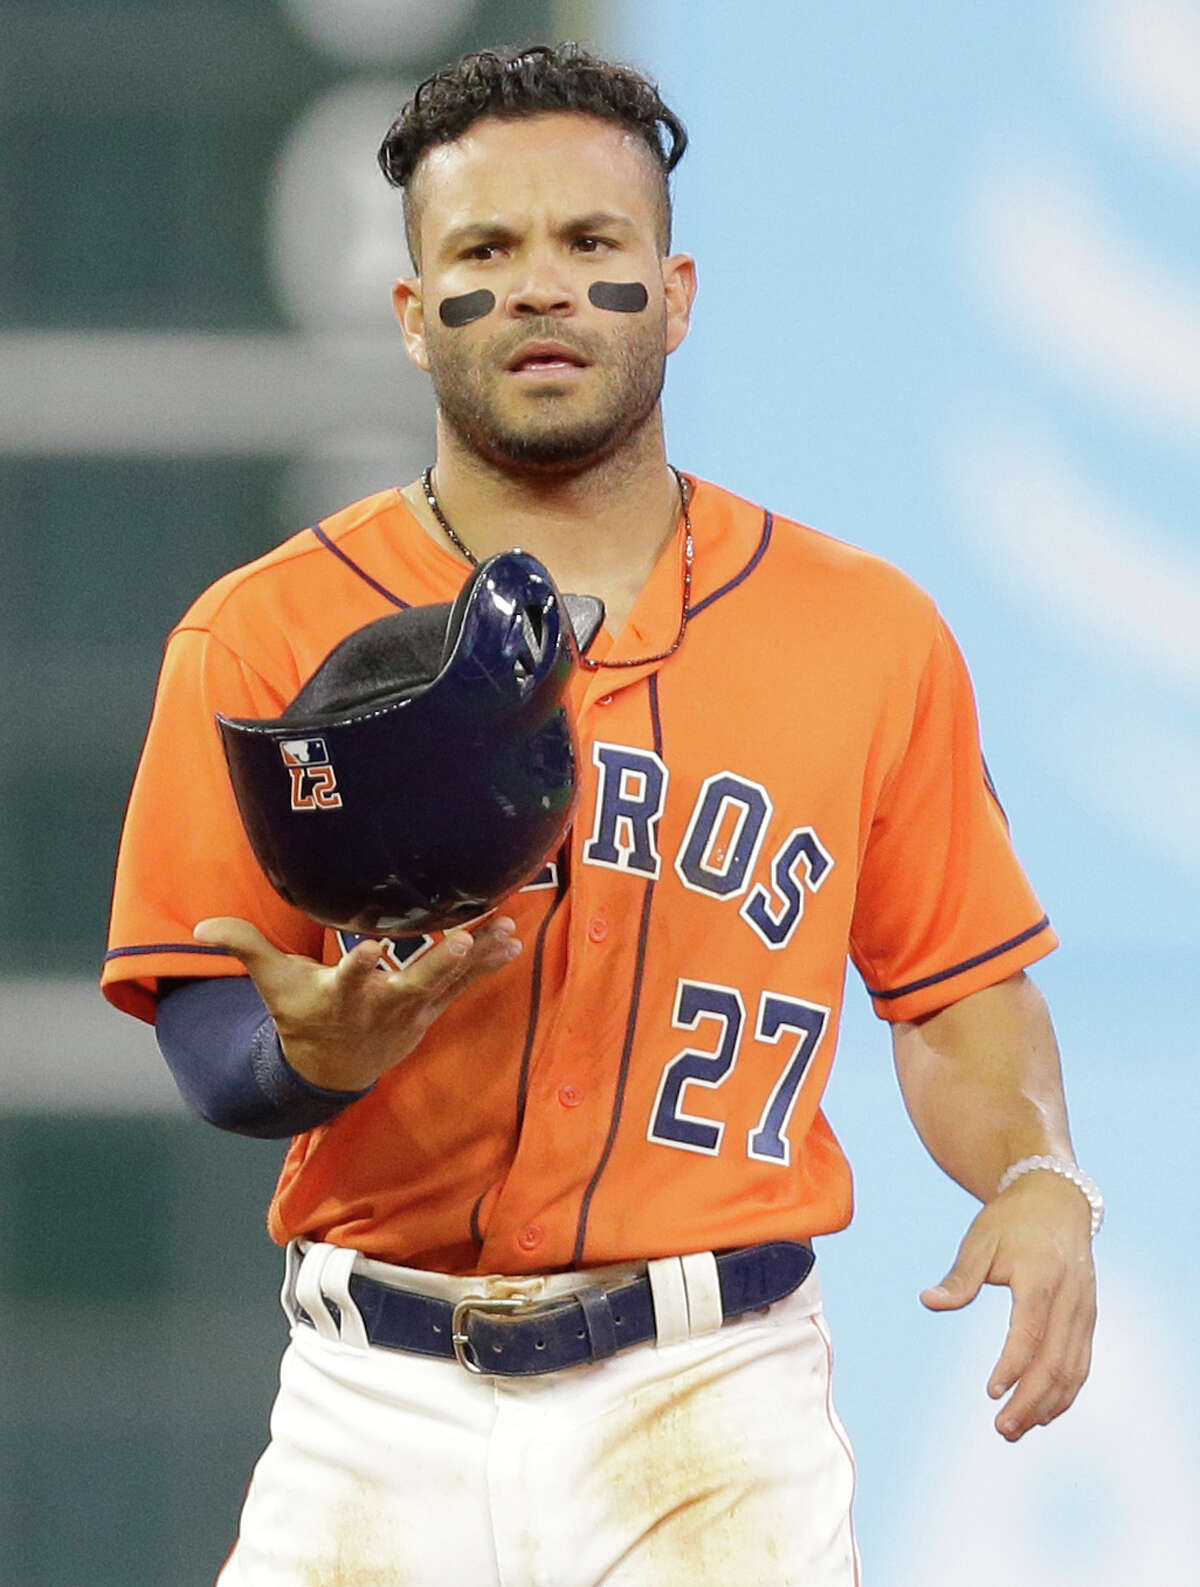 Houston Astros Jose Altuve flips his helmet as he walks back to dugout after the first inning of MLB game against the San Diego Padres at Minute Maid Park Friday, April 6, 2018, in Houston. ( Melissa Phillip / Houston Chronicle )